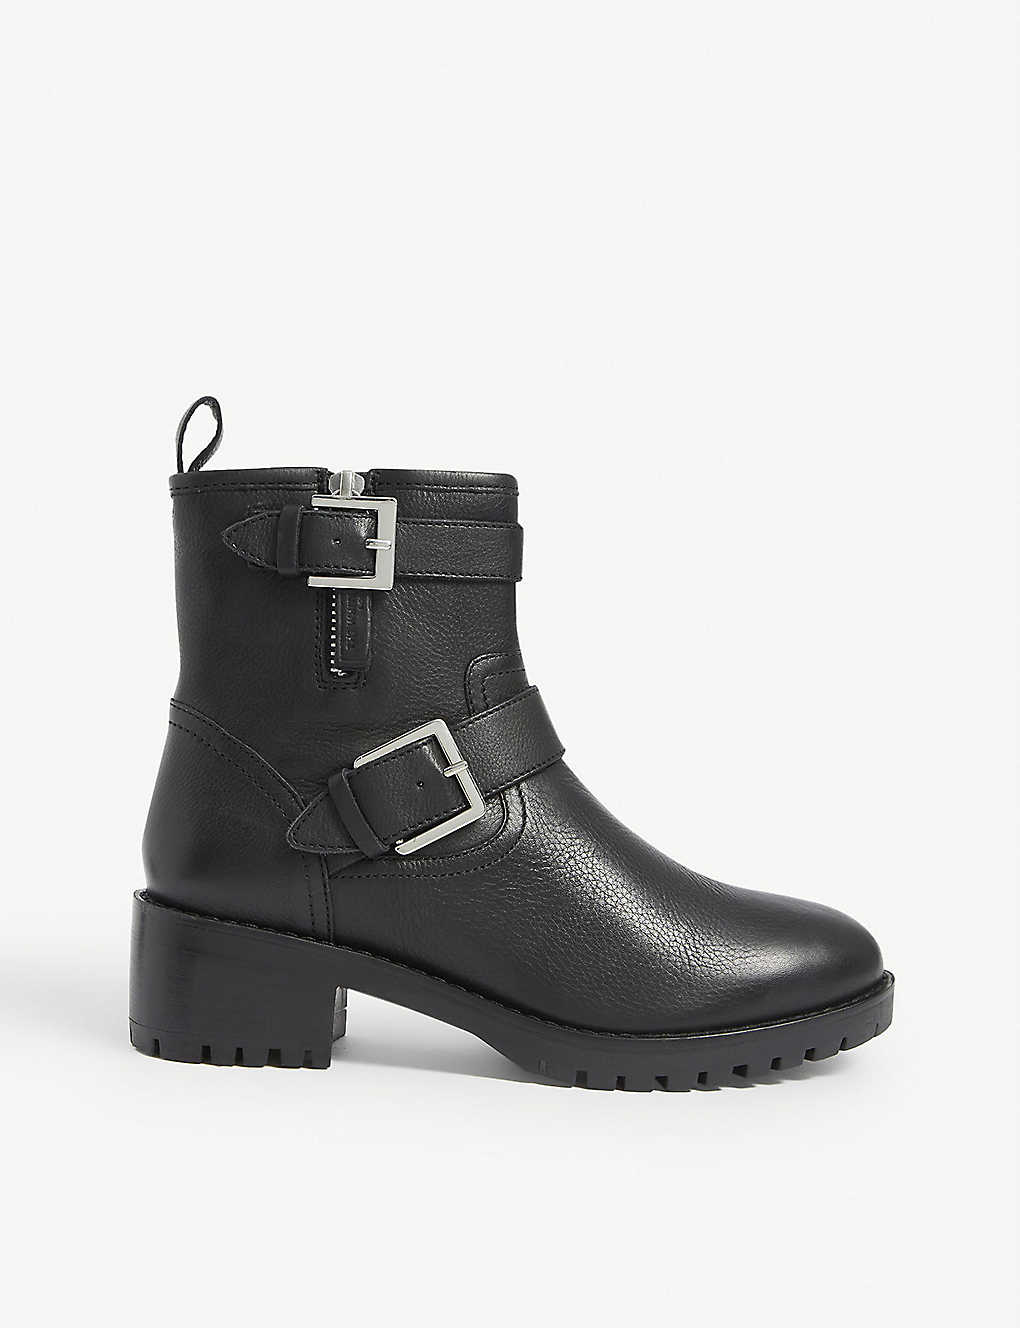 THE WHITE COMPANY: Buckled leather biker boots